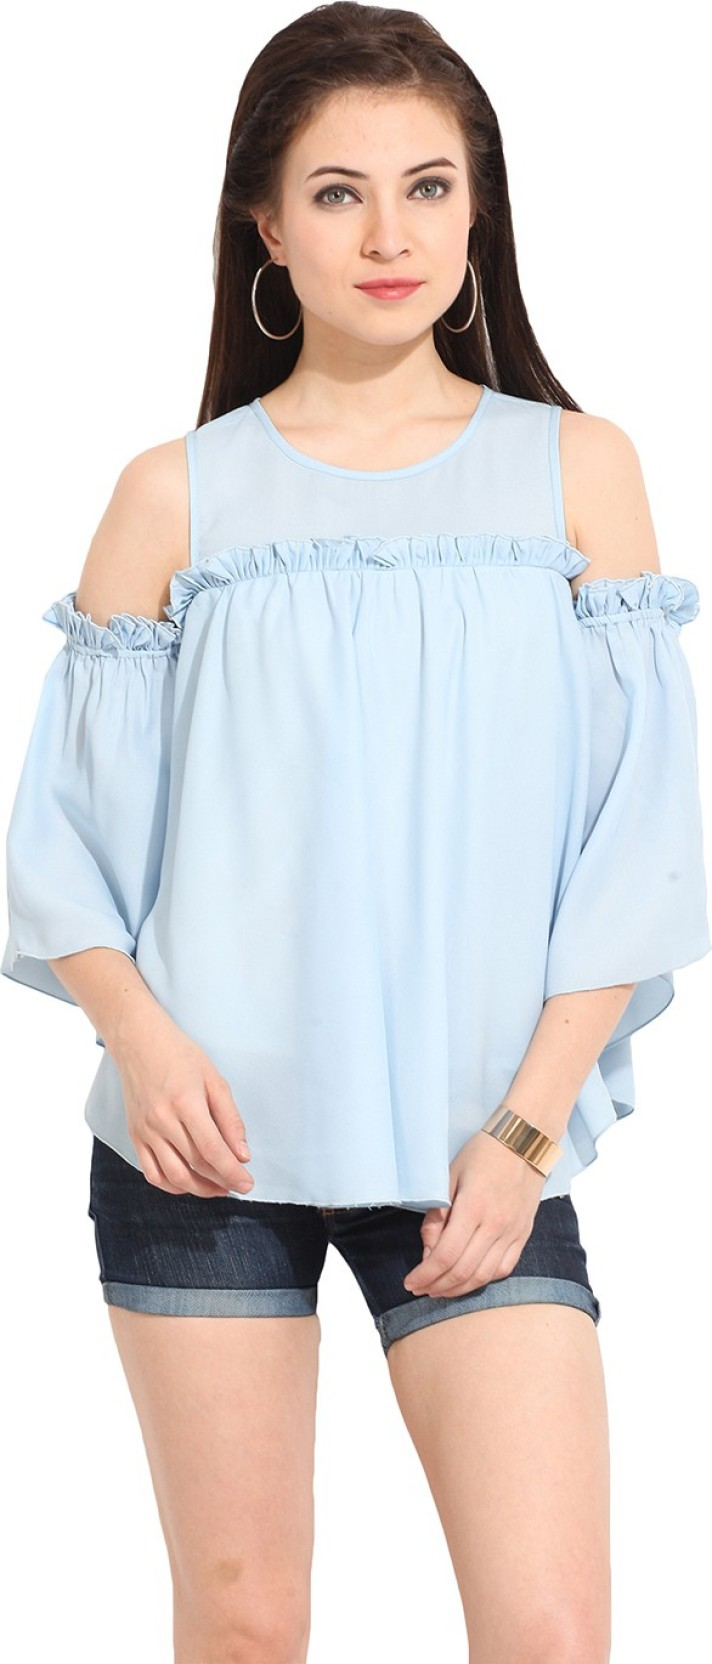 3ed6b07aff80f2 Ridress Casual Short Sleeve Solid Women's Blue Top - Buy Blue ...